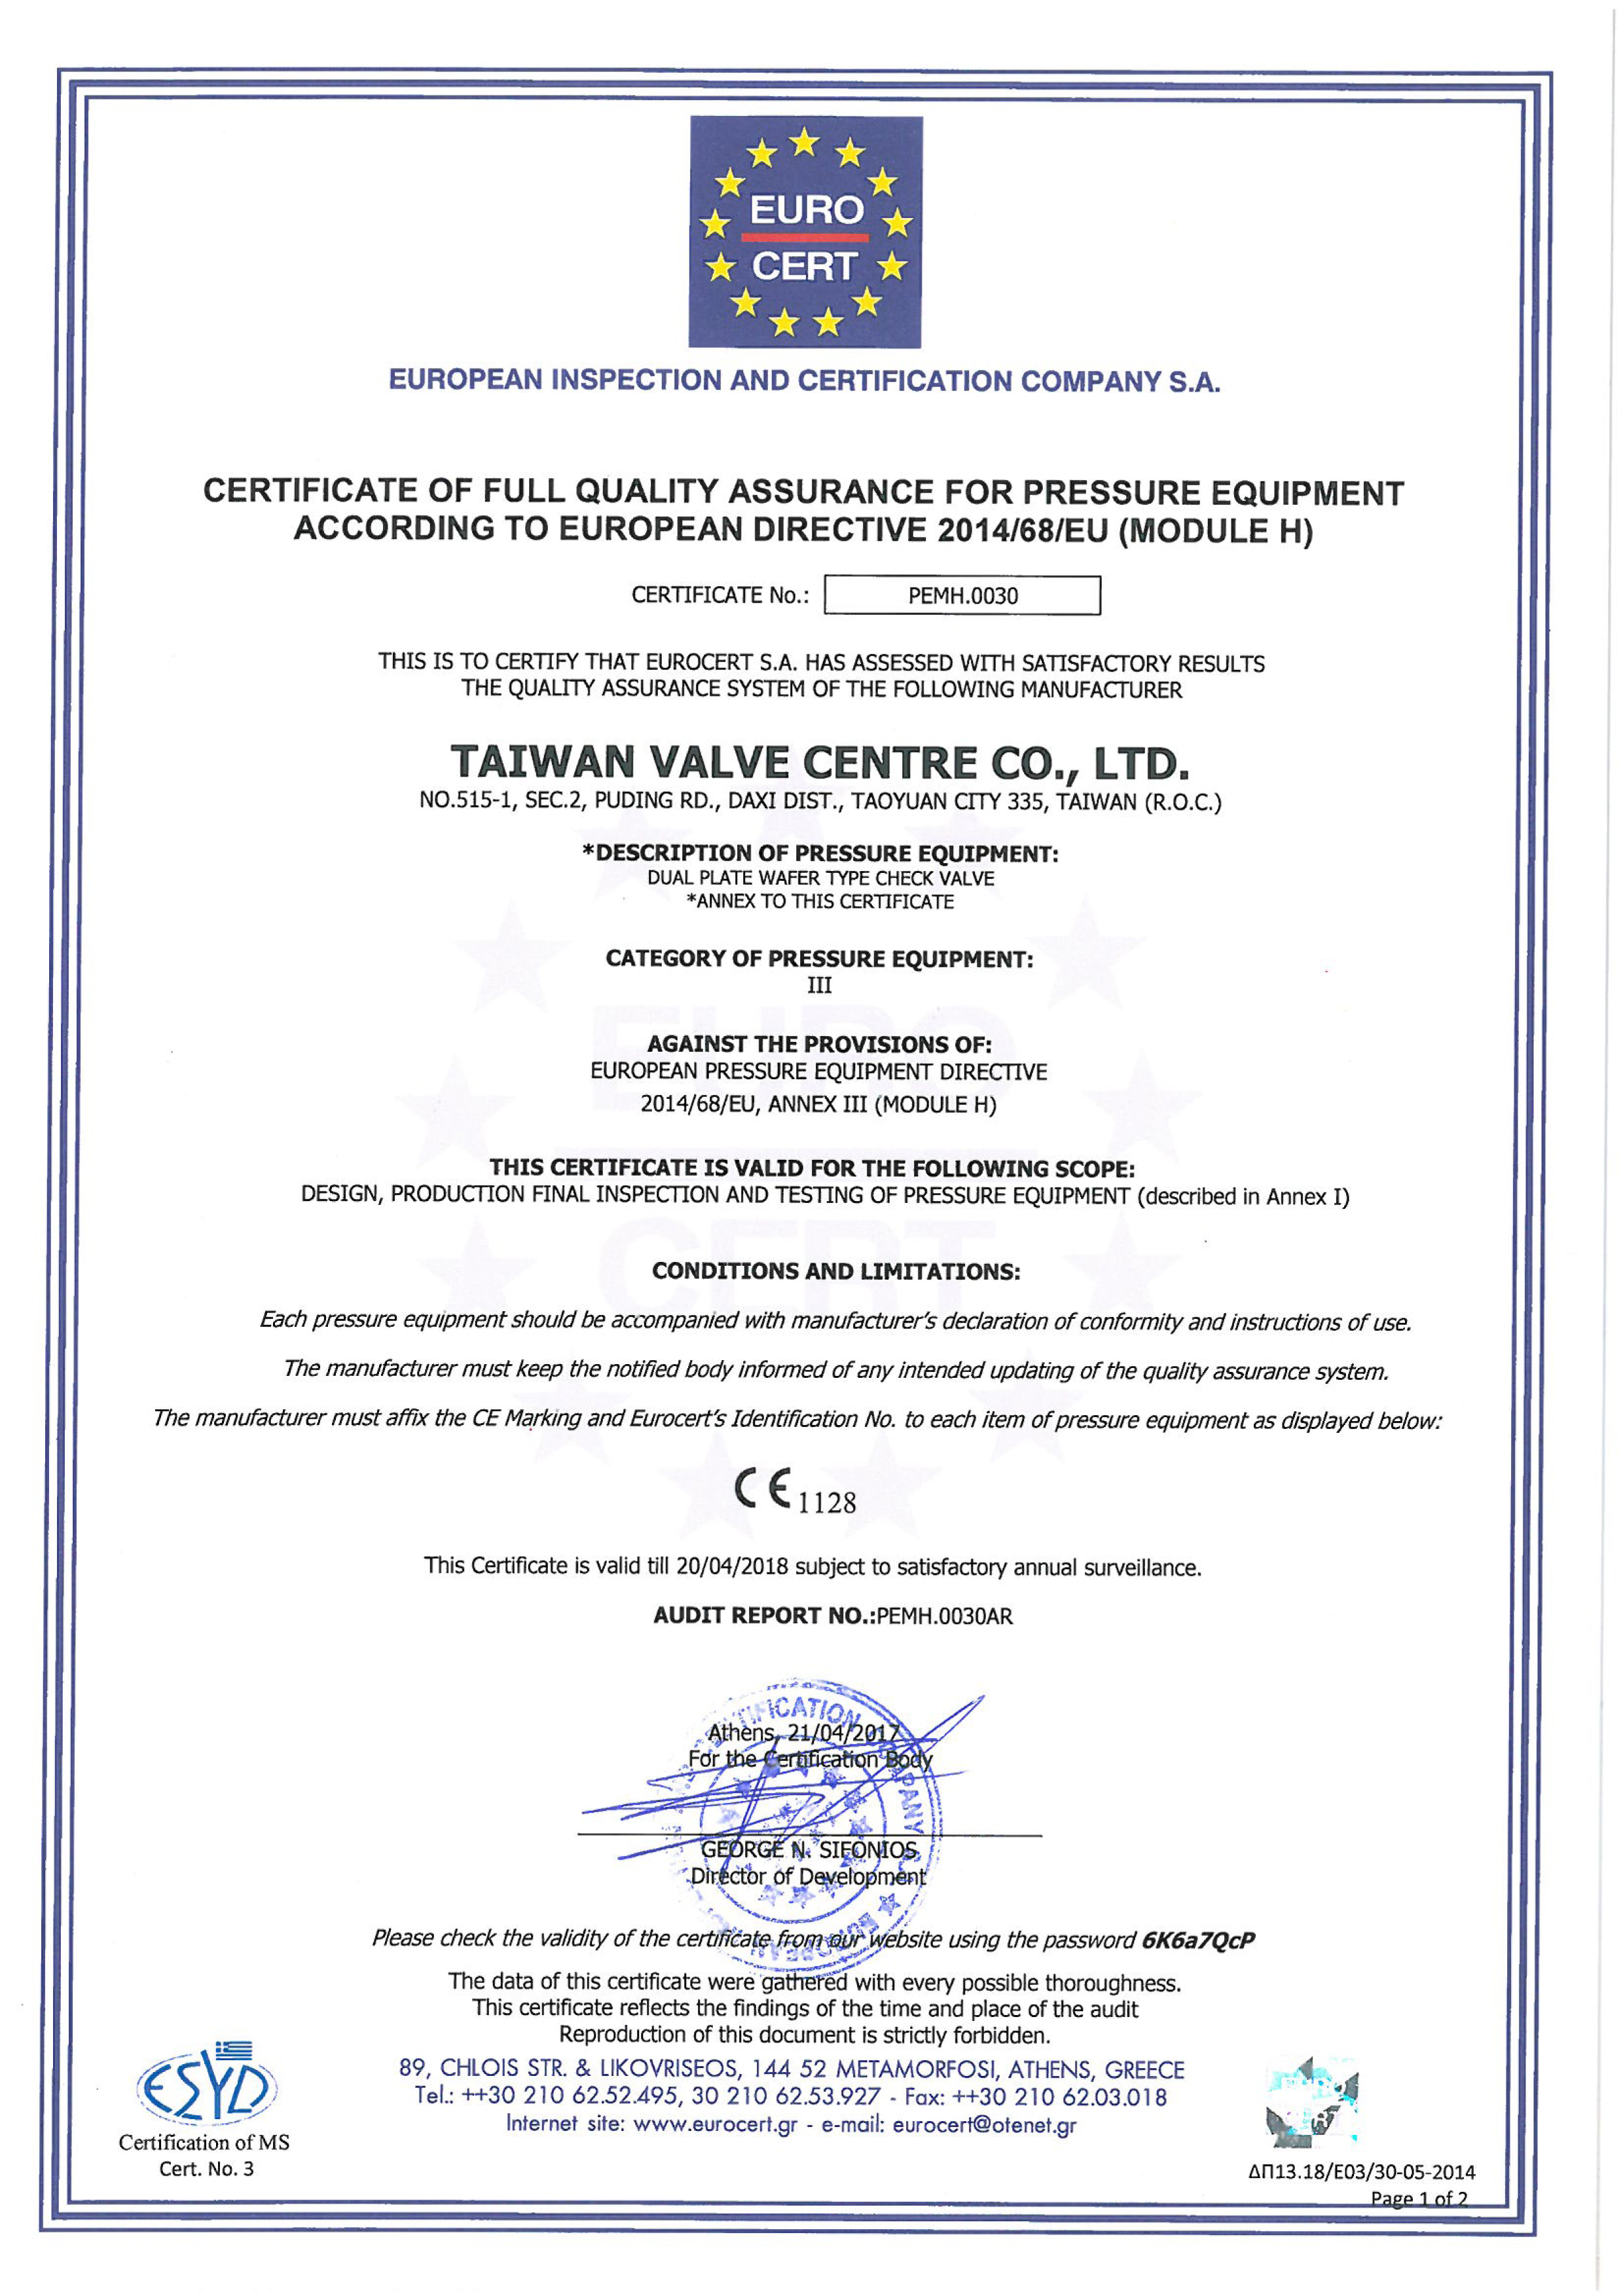 We got the ce certification tvccl taiwan valve news and ce certification 1betcityfo Choice Image